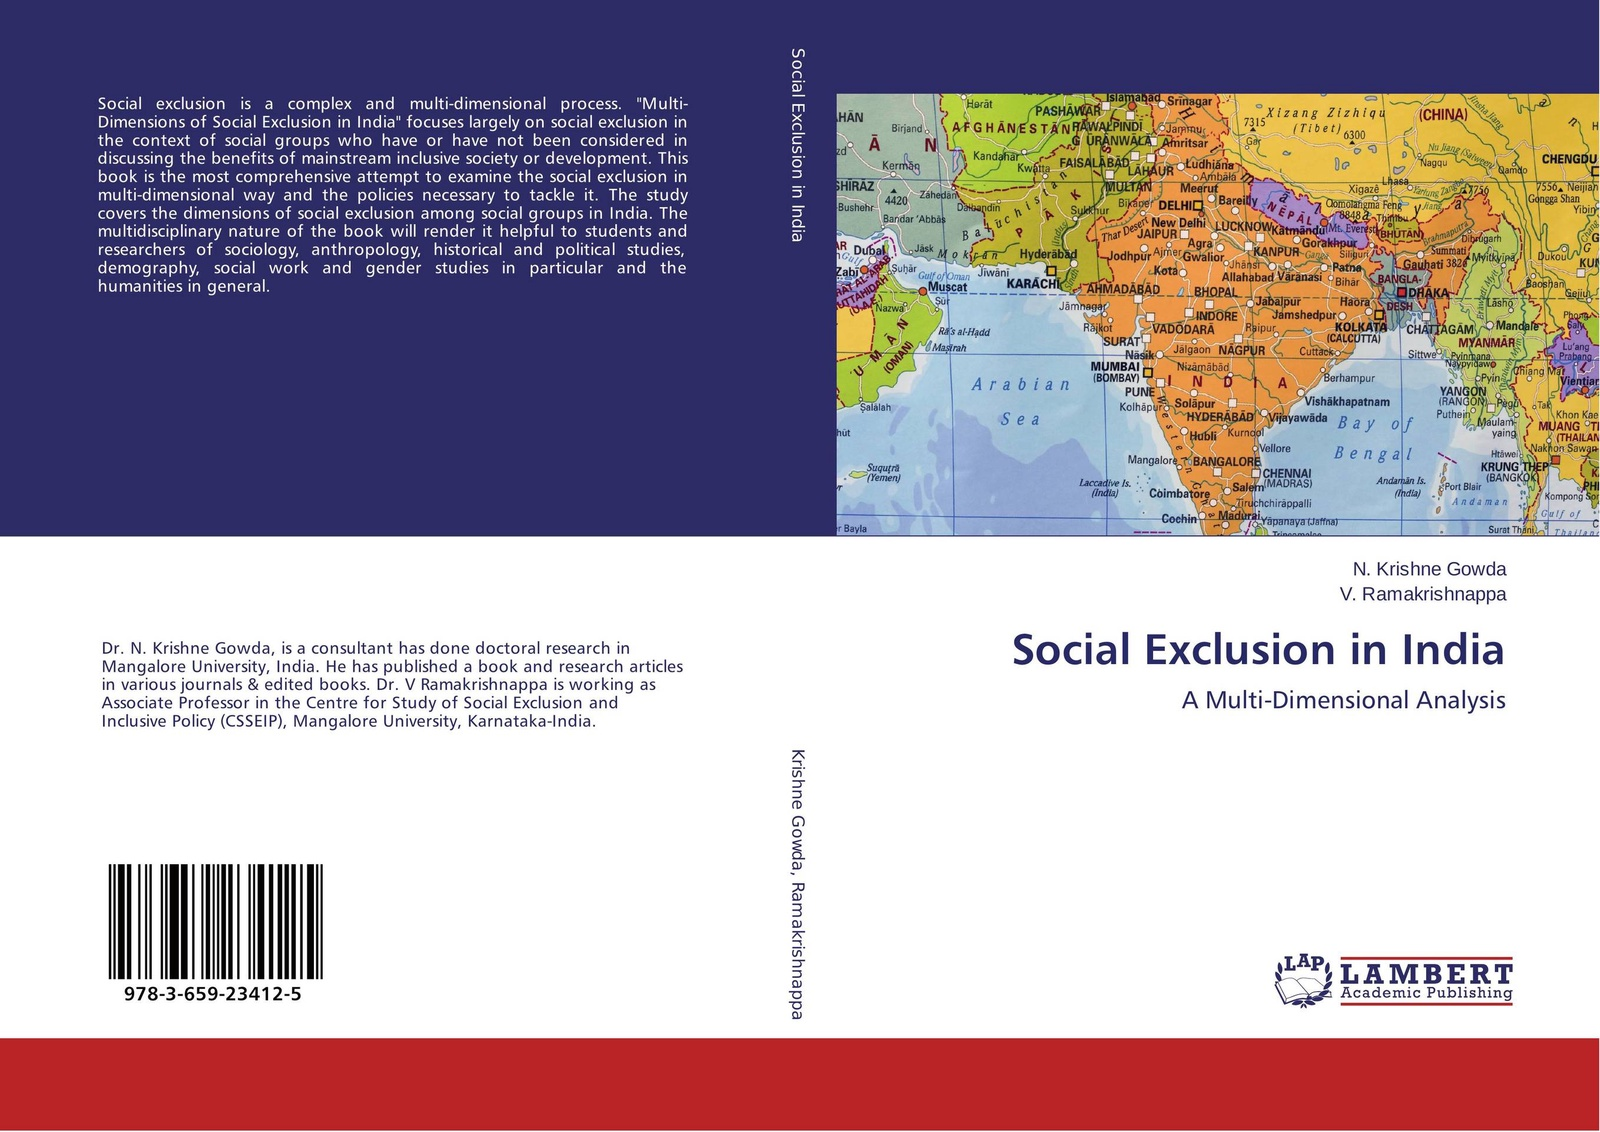 N. Krishne Gowda and V. Ramakrishnappa Social Exclusion in India romani exclusion in france